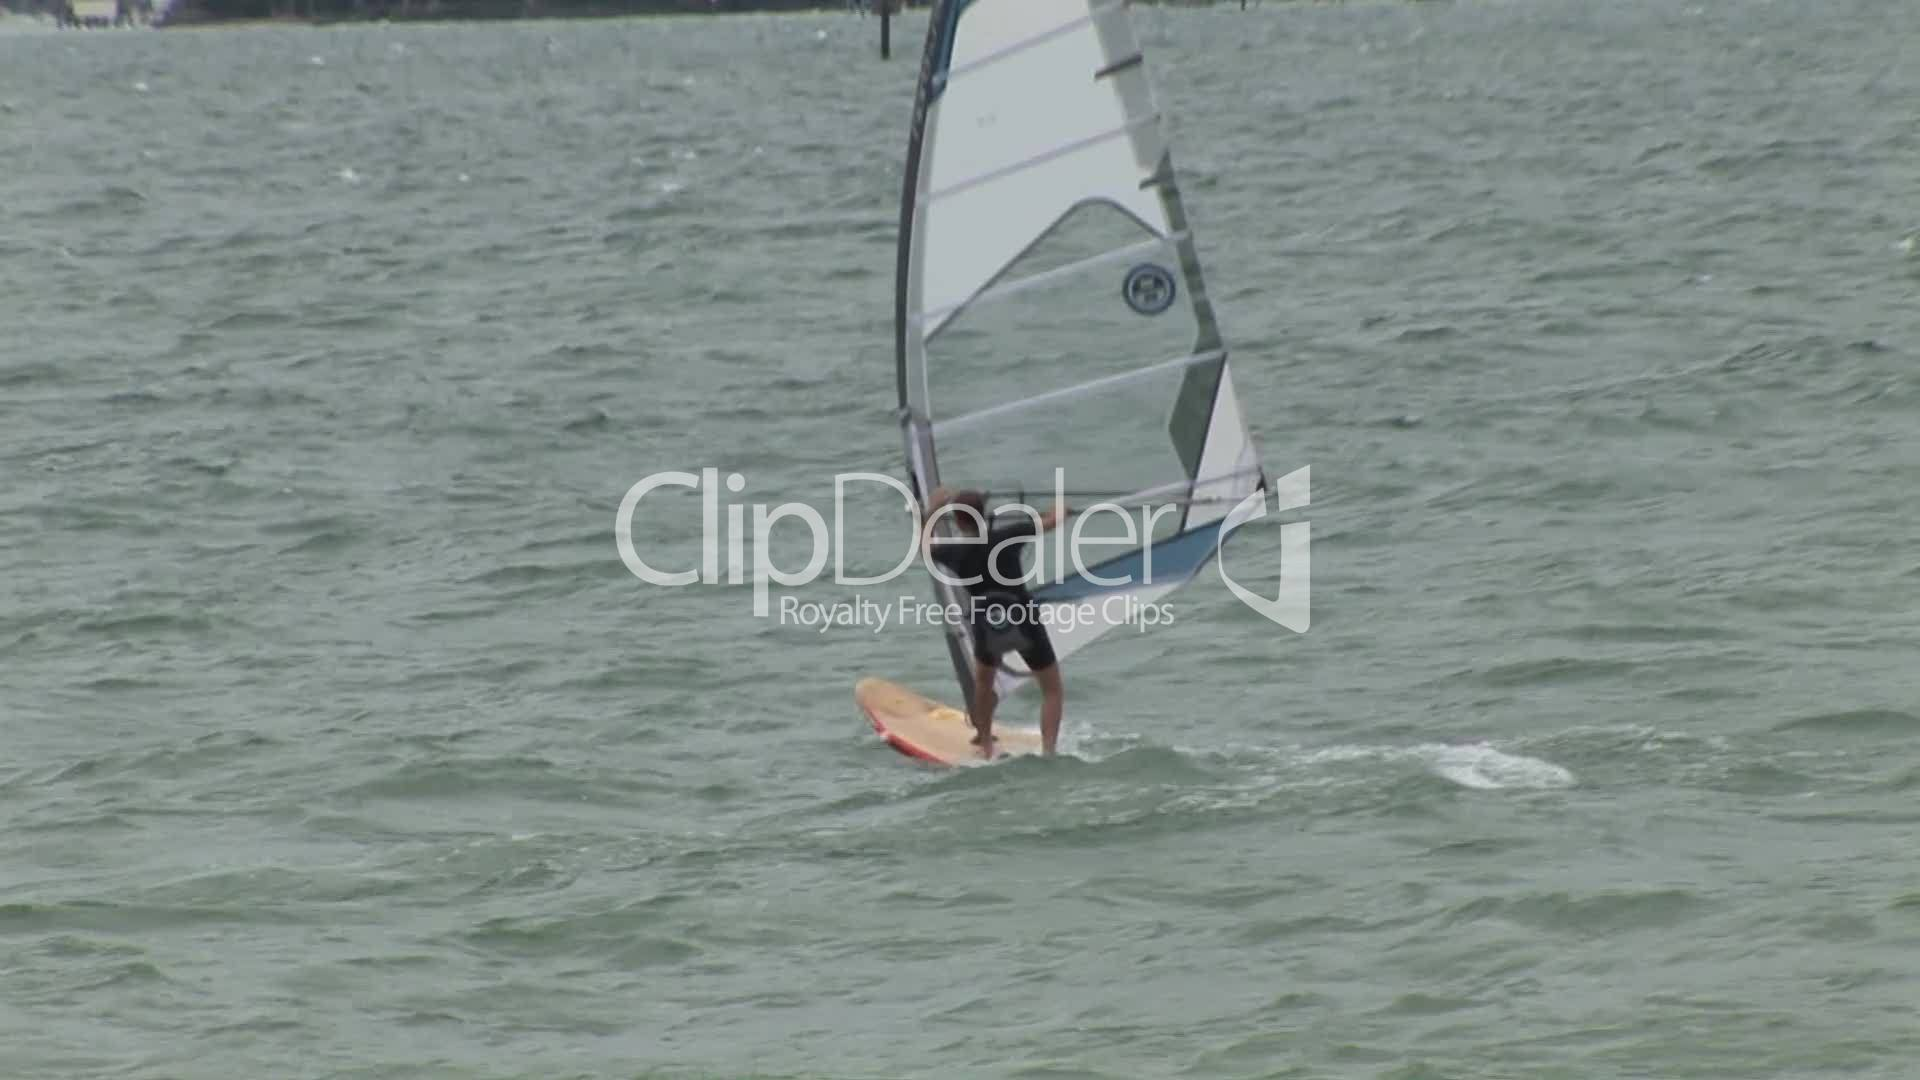 Windsurfer: Royalty-free video and stock footage